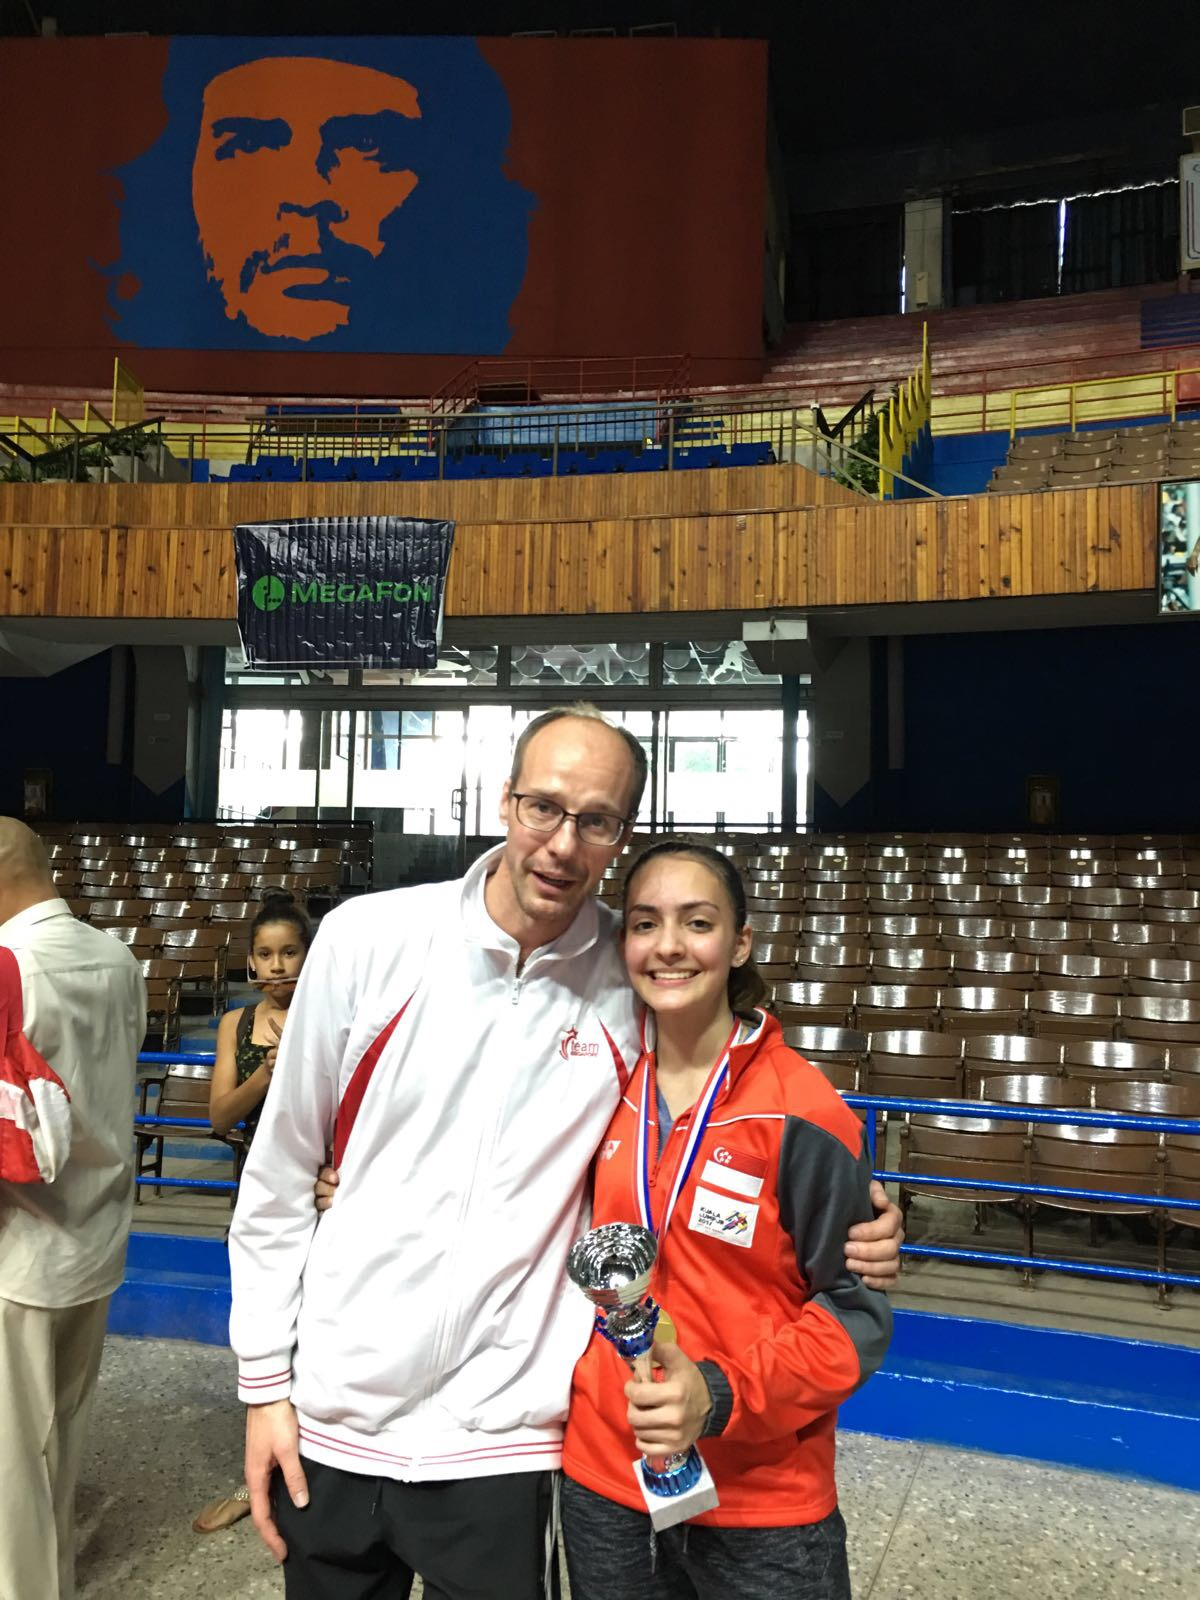 Amita's first Junior World Cup win propels her to World No. 5 in Junior rankings.